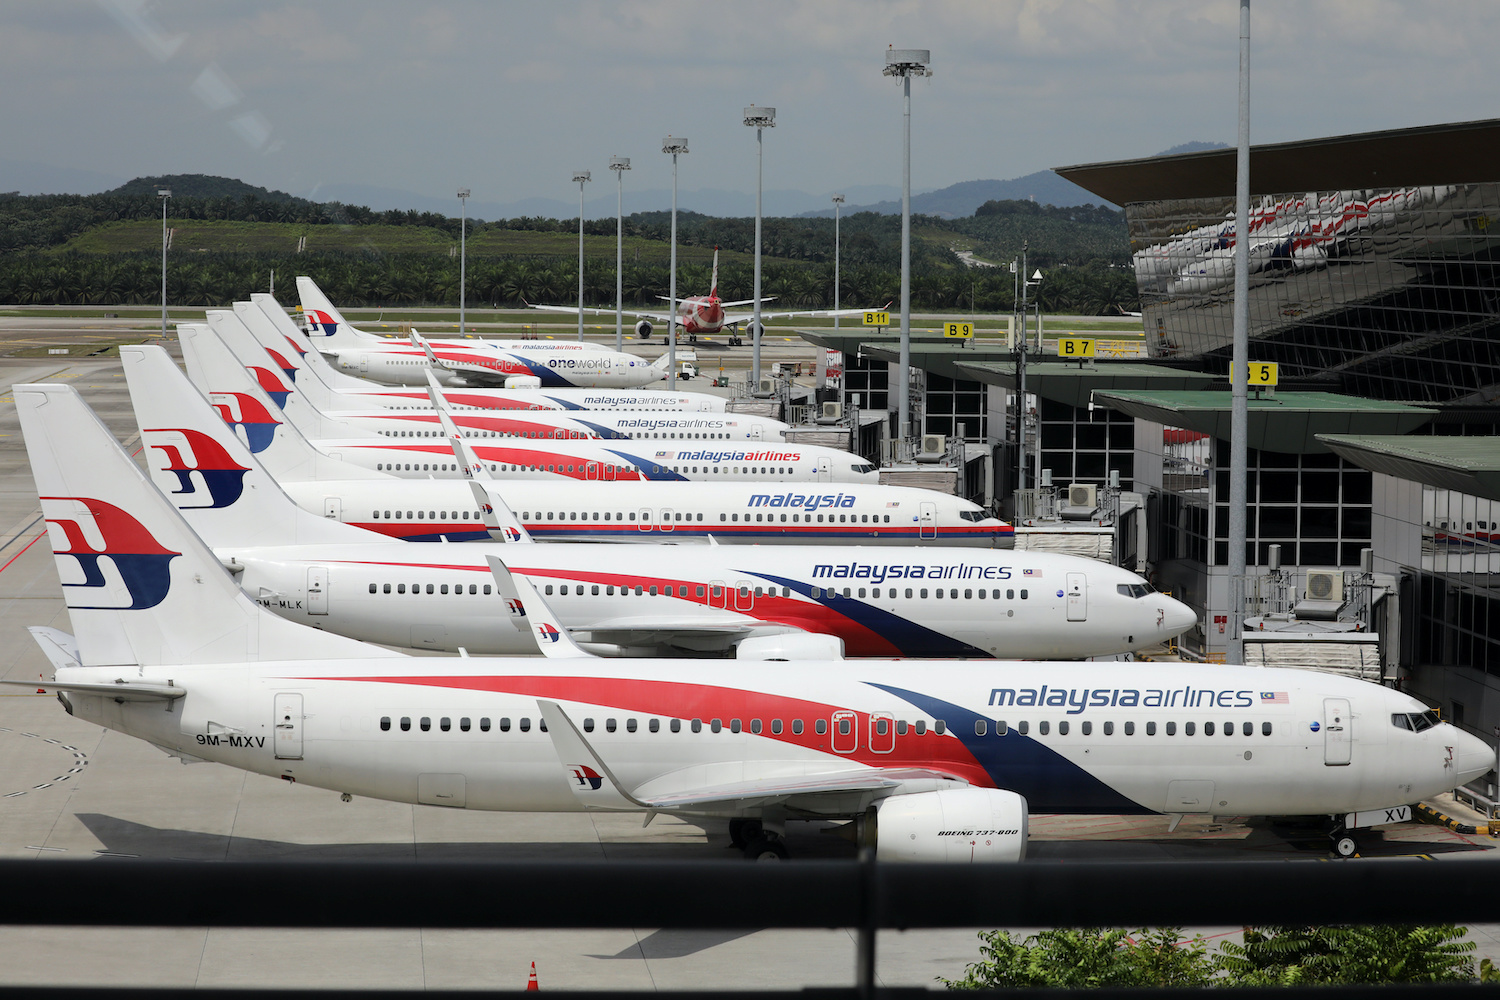 Malaysia Airlines jets are seen parked at Kuala Lumpur International Airport on Oct 6. (Reuters Photo)